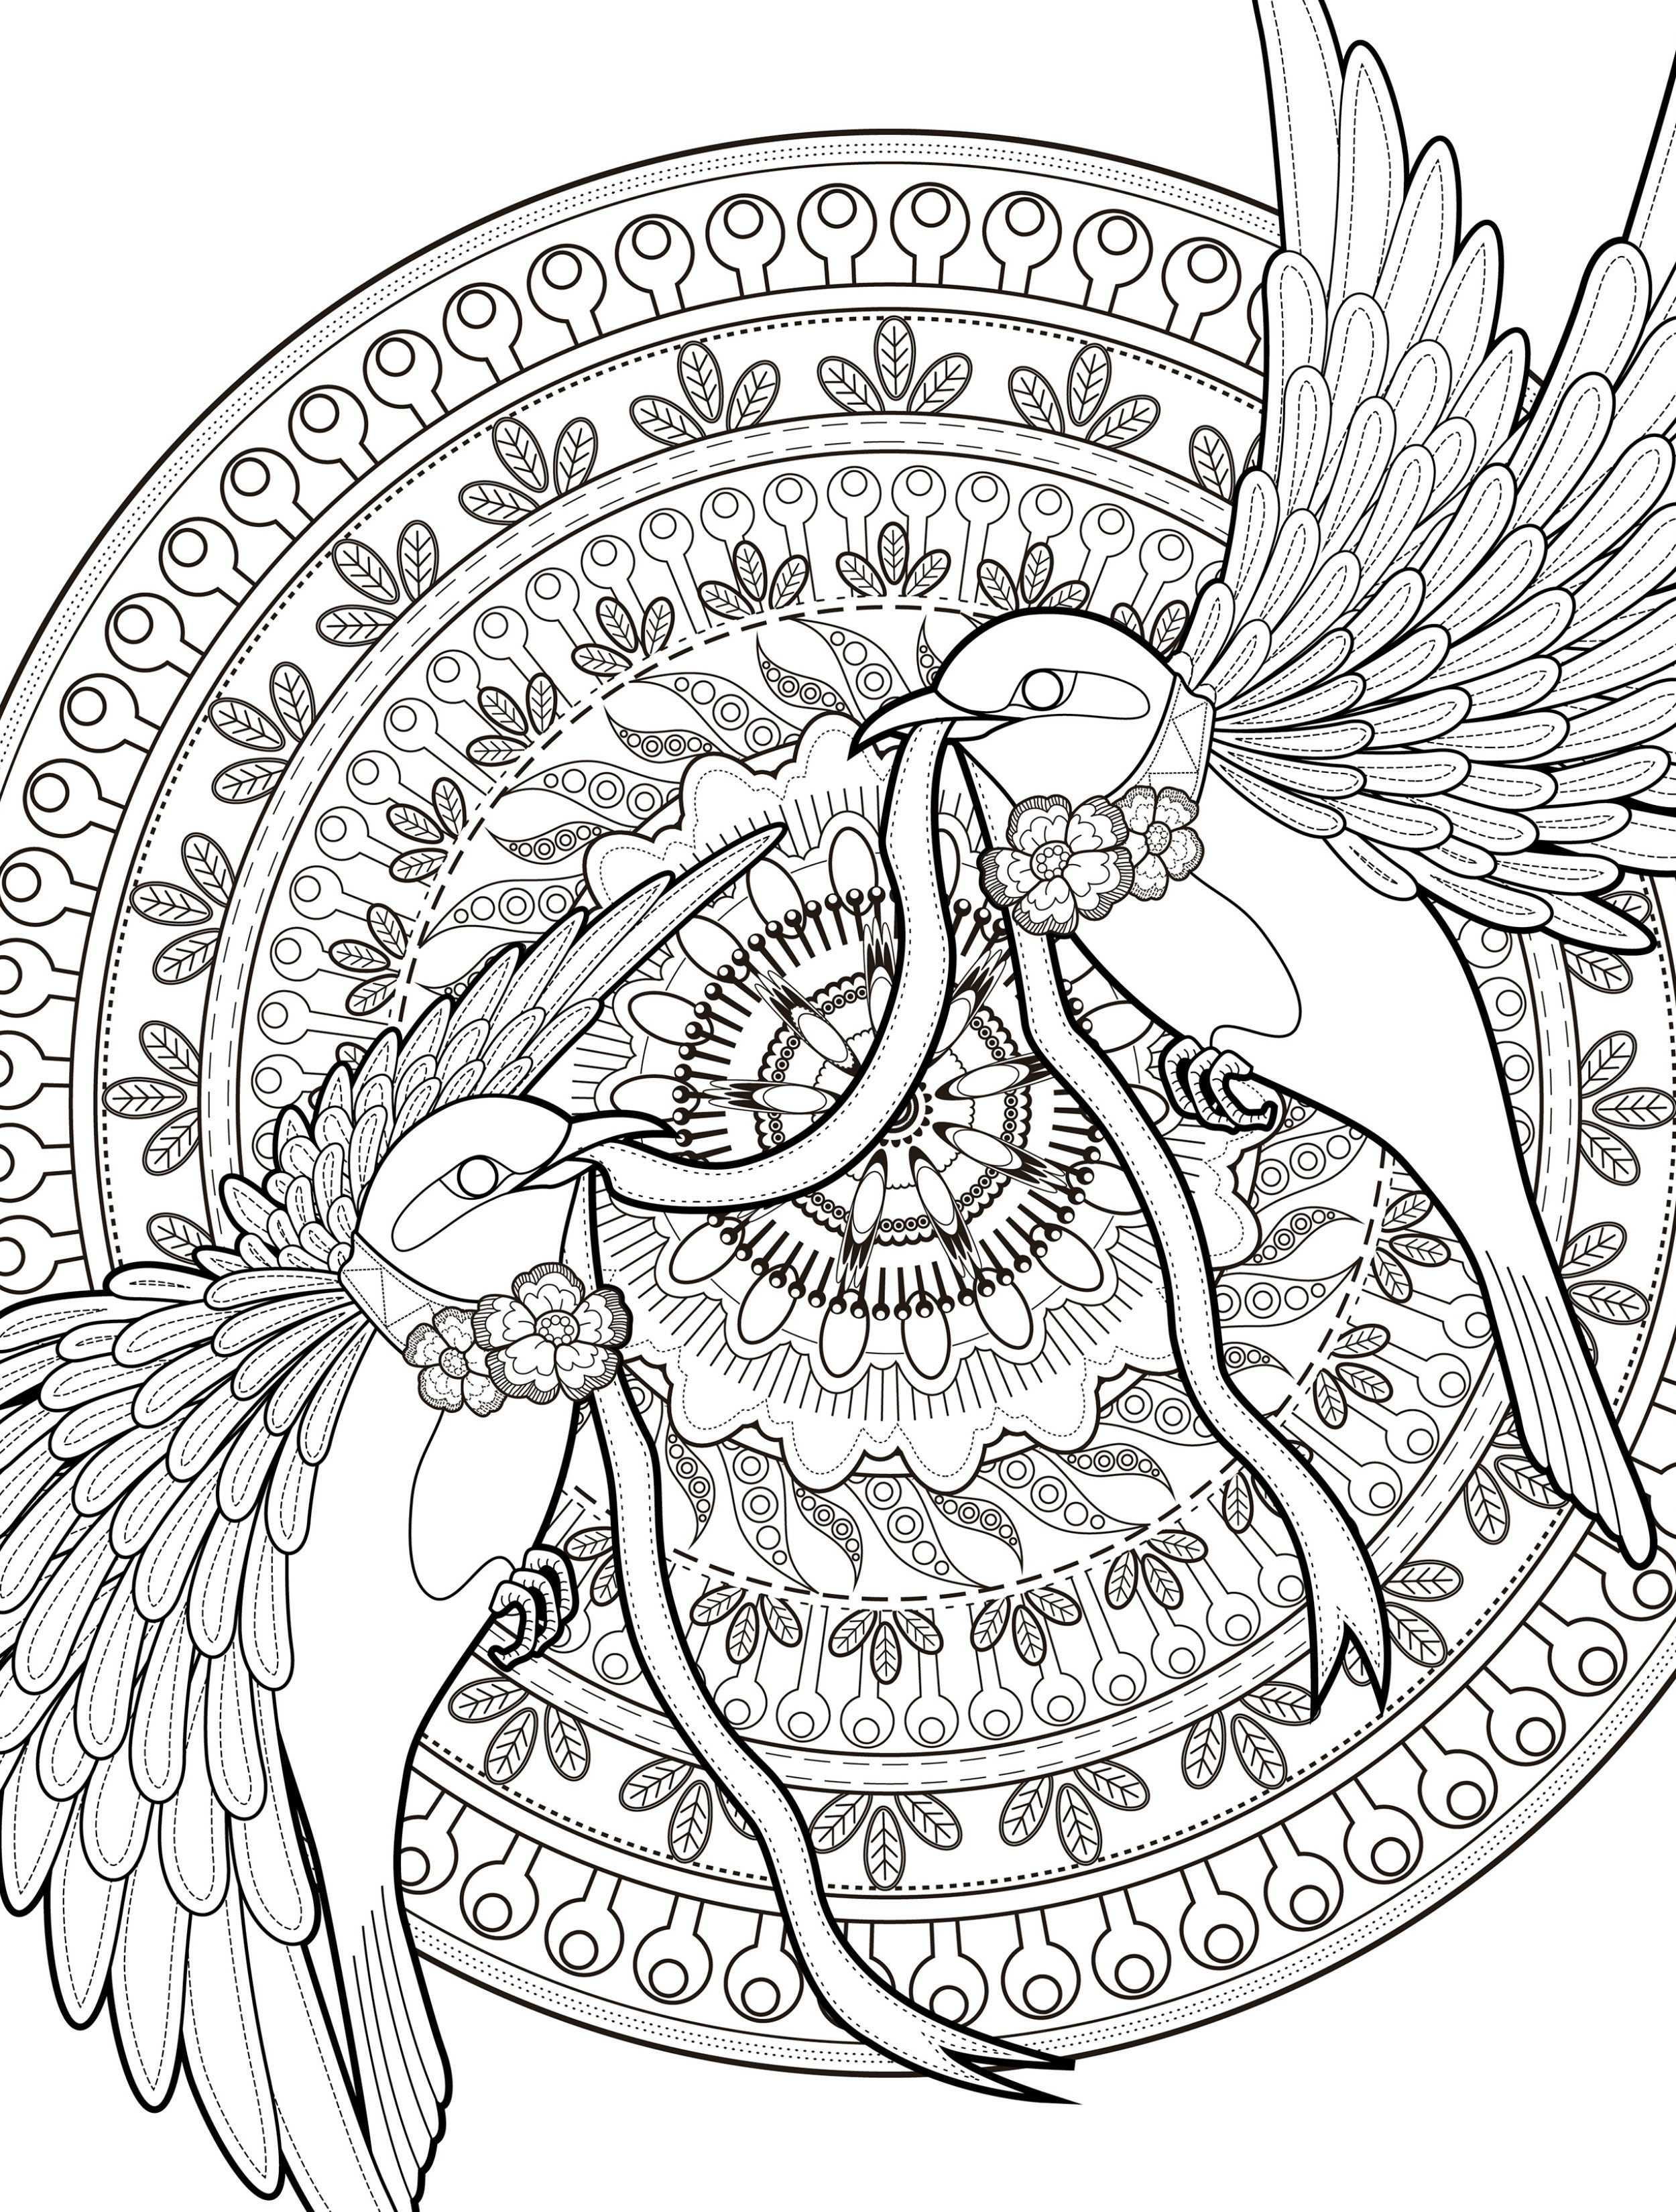 Adult Coloring Book Download  1000 images about More coloring on Pinterest